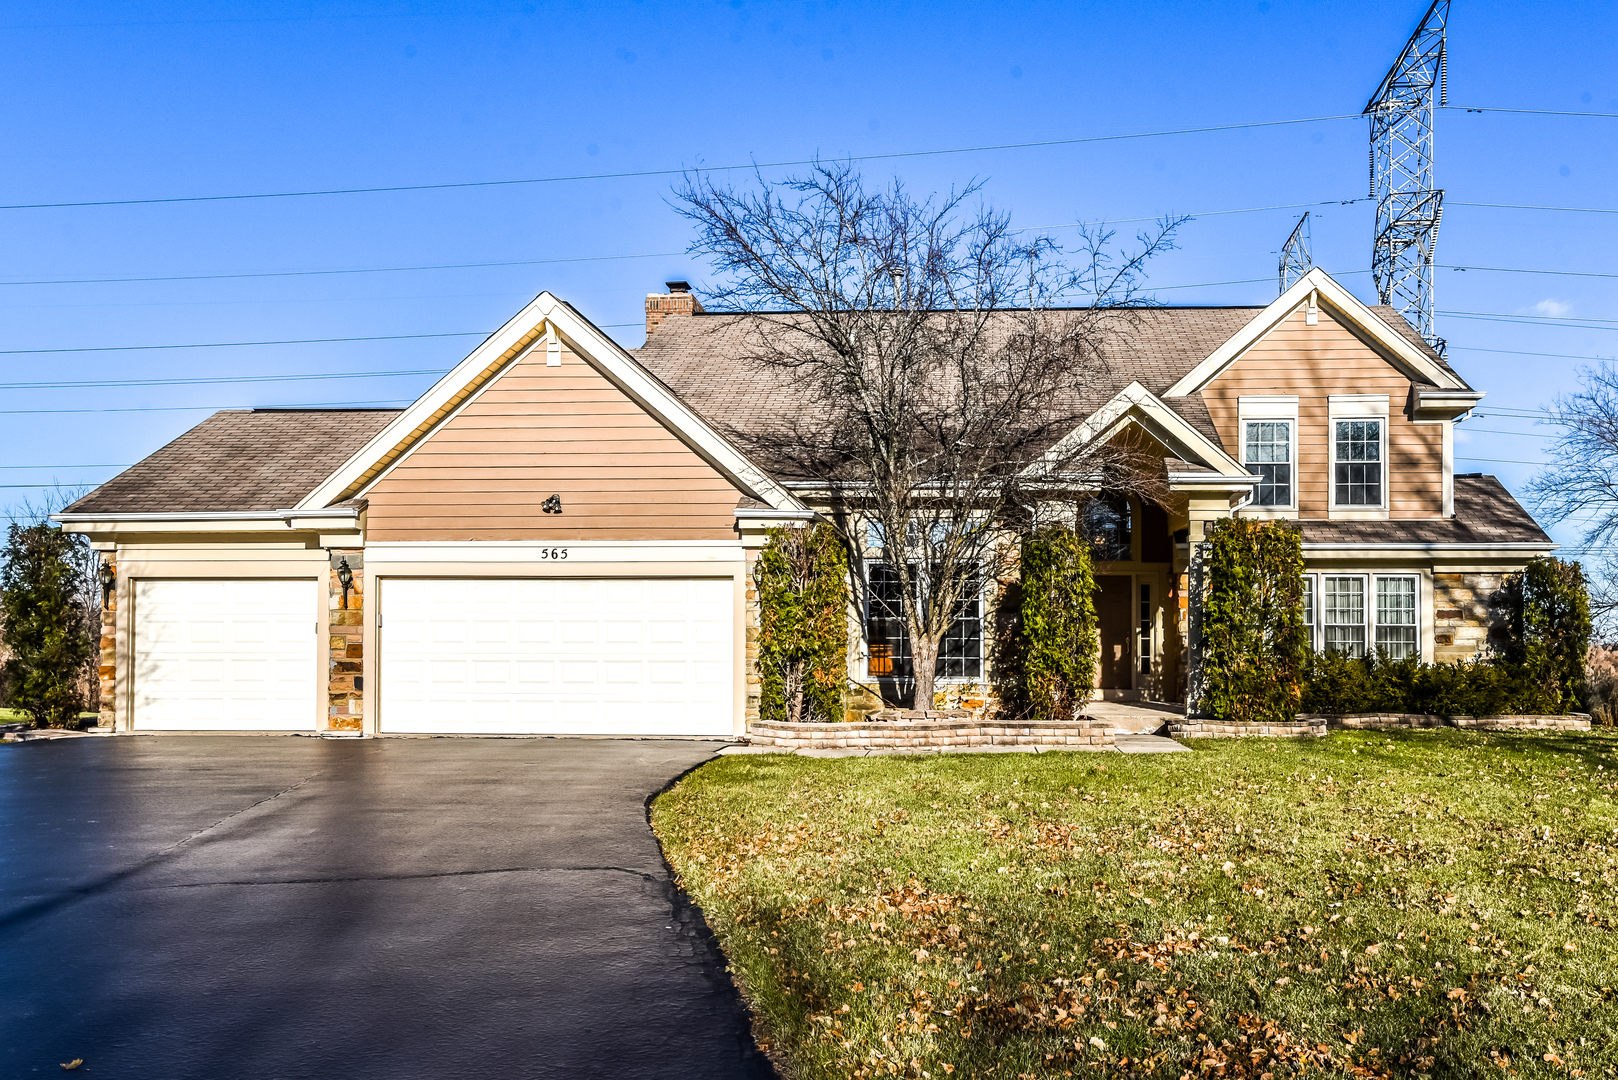 565 Coventry Lane, Buffalo Grove in Lake County, IL 60089 Home for Sale